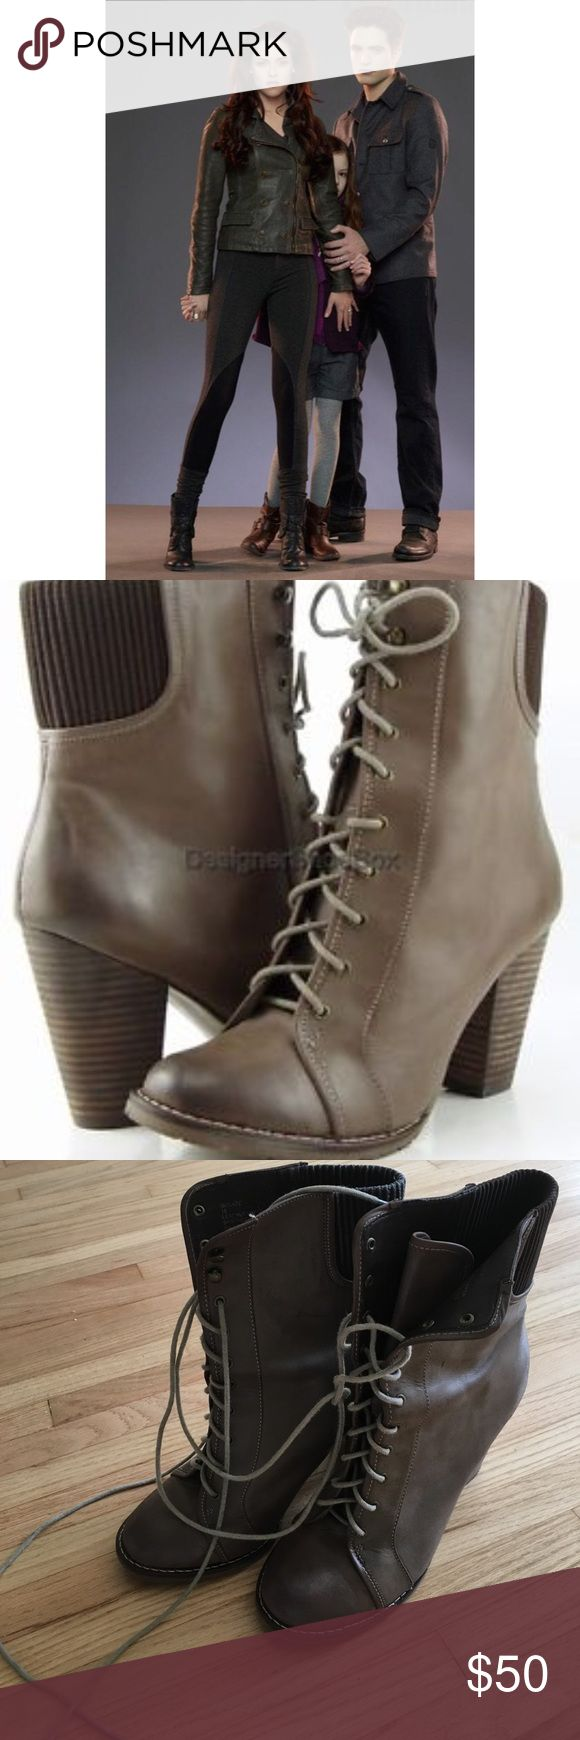 Bella from Twilight Steve Madden Boots Adorable boots SAME as Bella's from  Twilight. Taupe/